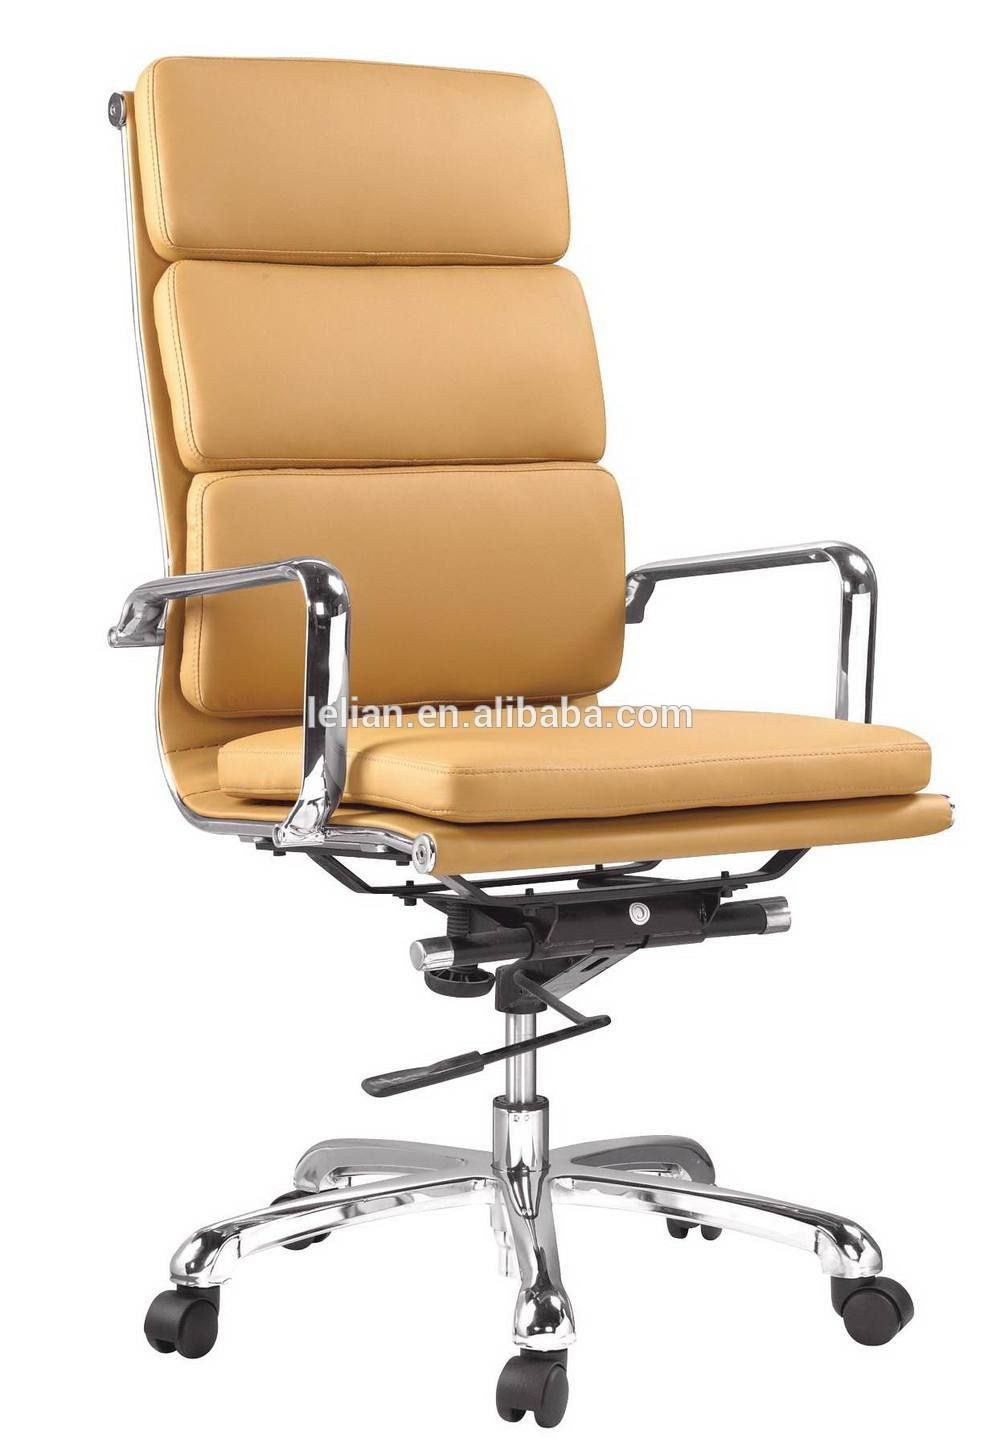 Godrej Furniture Price List From Office Chair Manufacturer L 88b Furniture Prices Furniture Office Chair